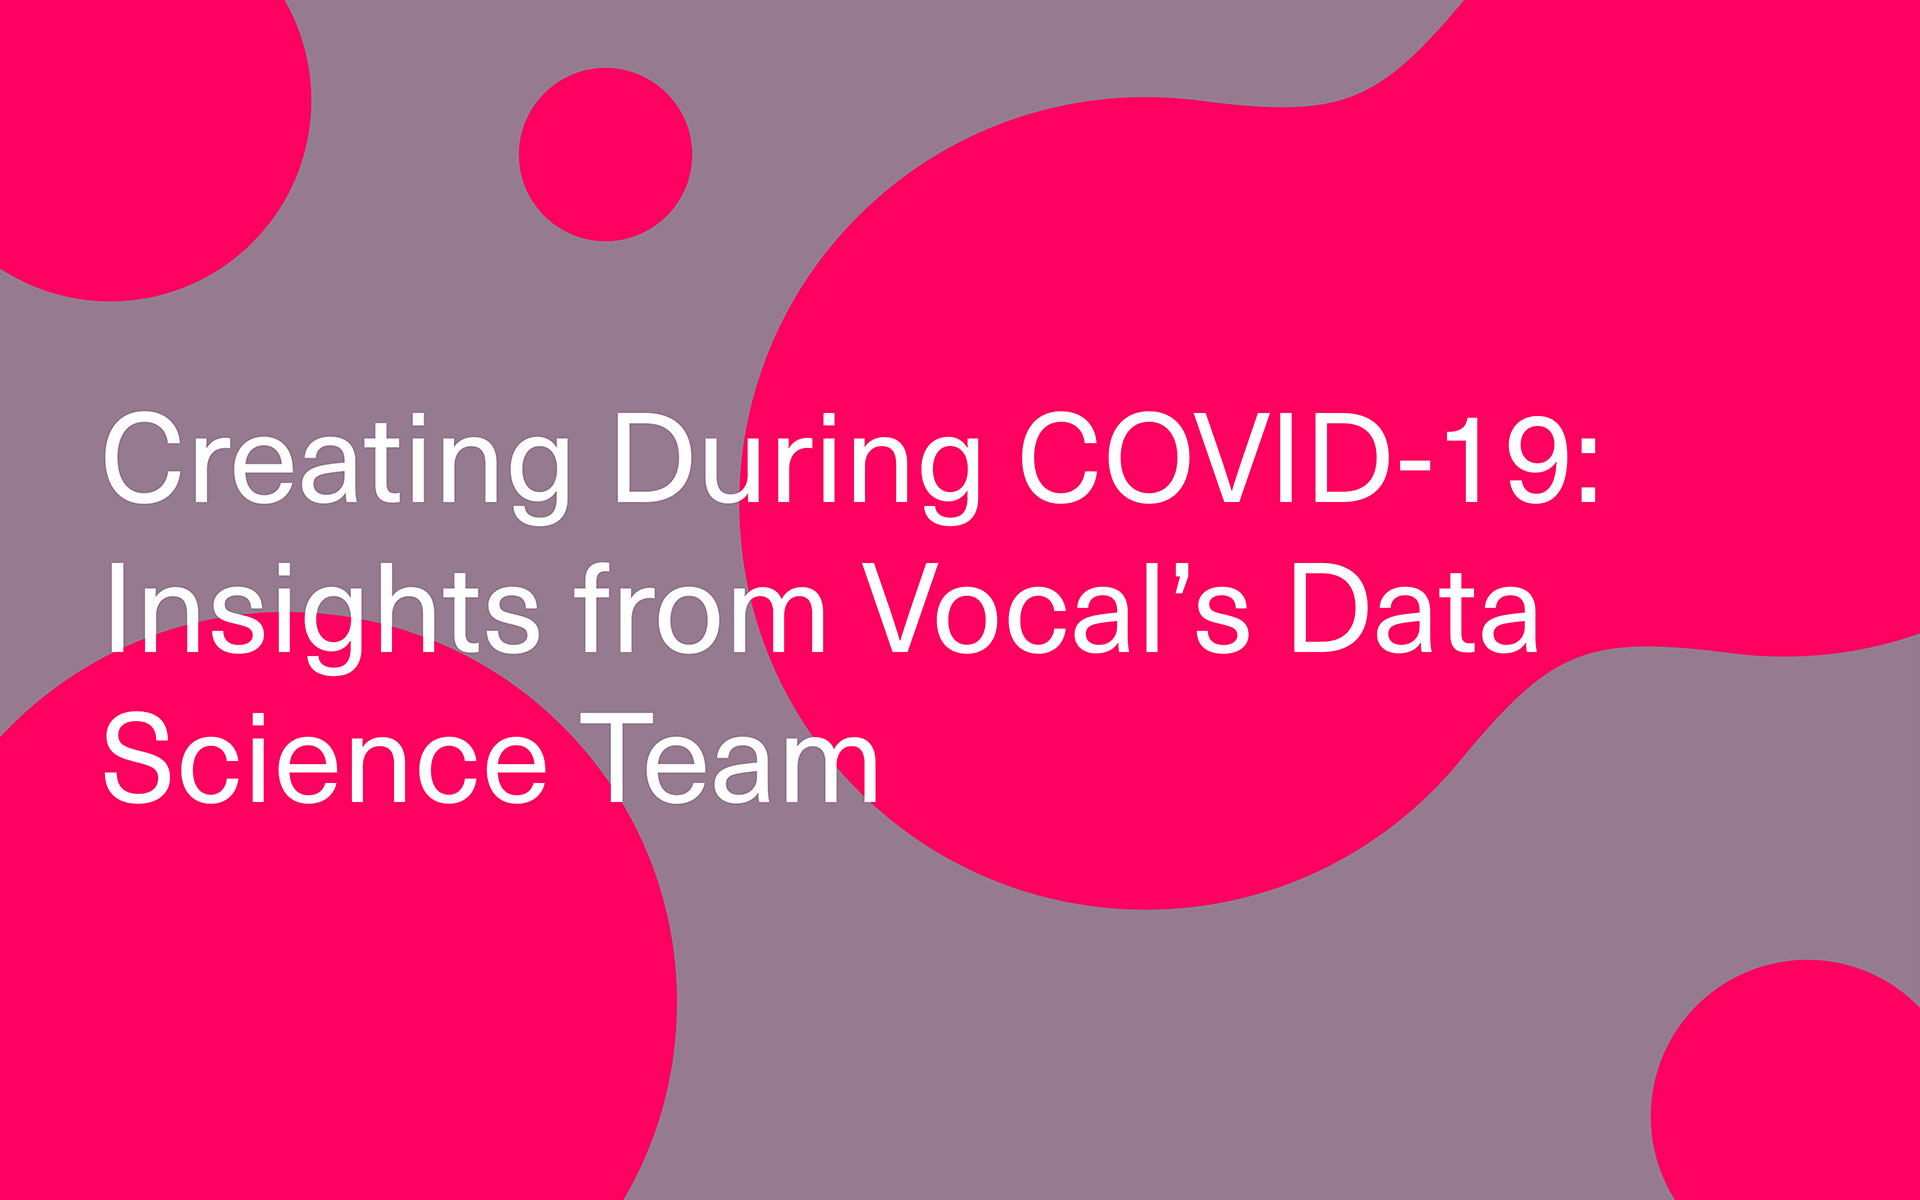 Creating During COVID-19: Insights from Vocal's Data Science Team by Robby Tal